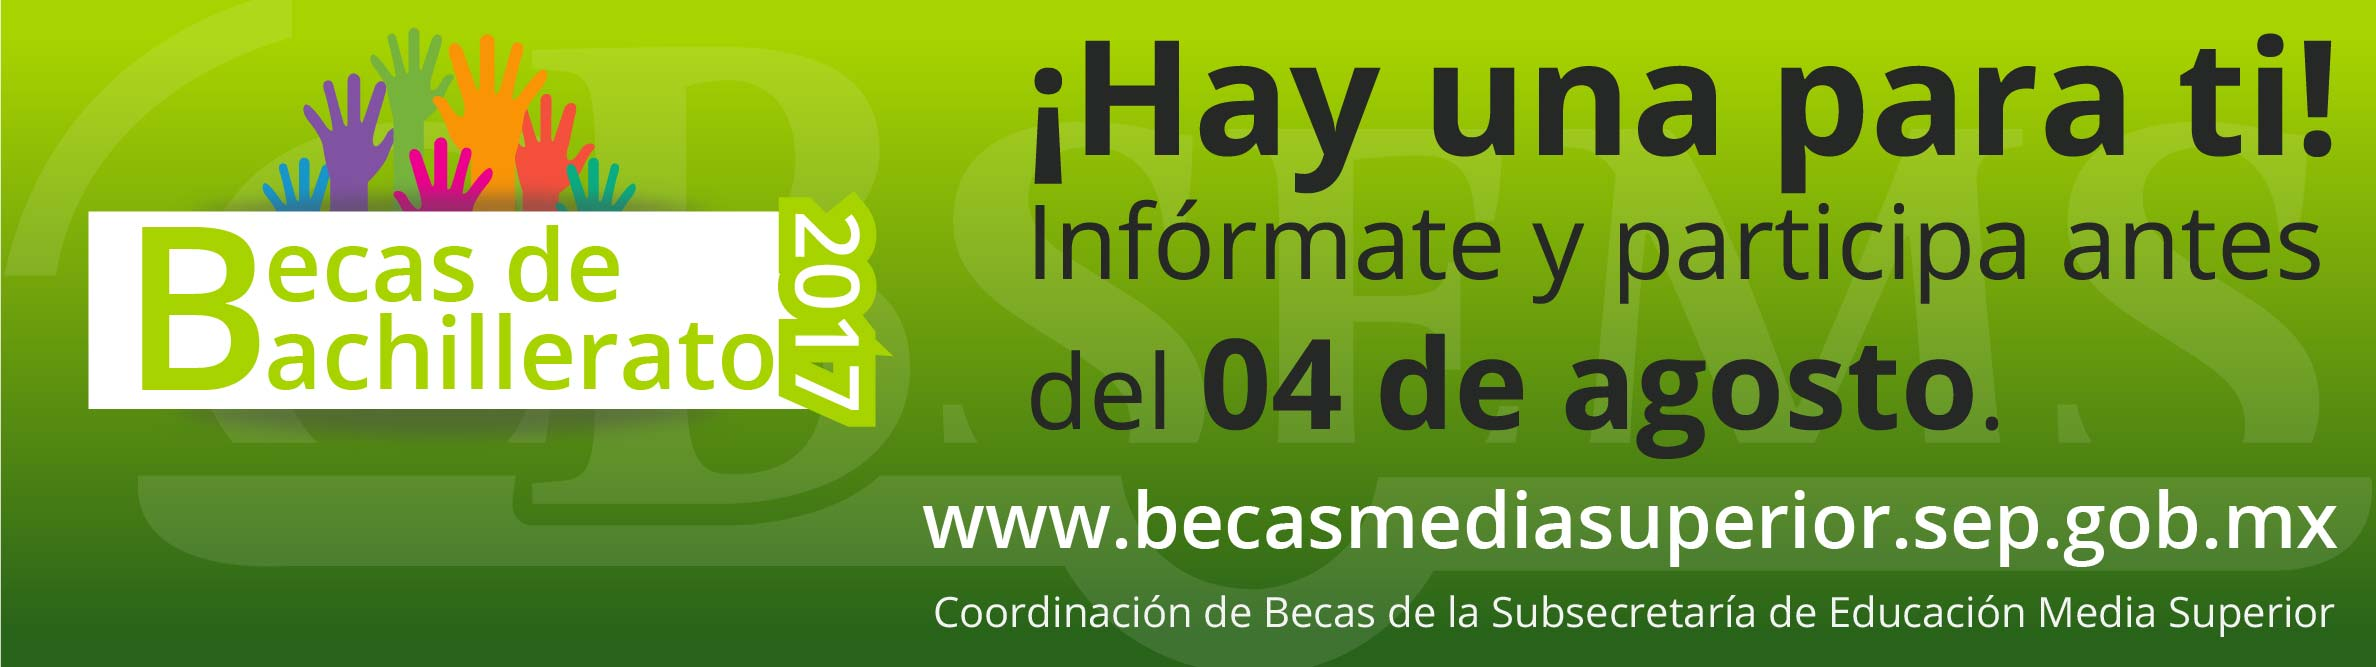 Banners Becas 2017 HUPT 03